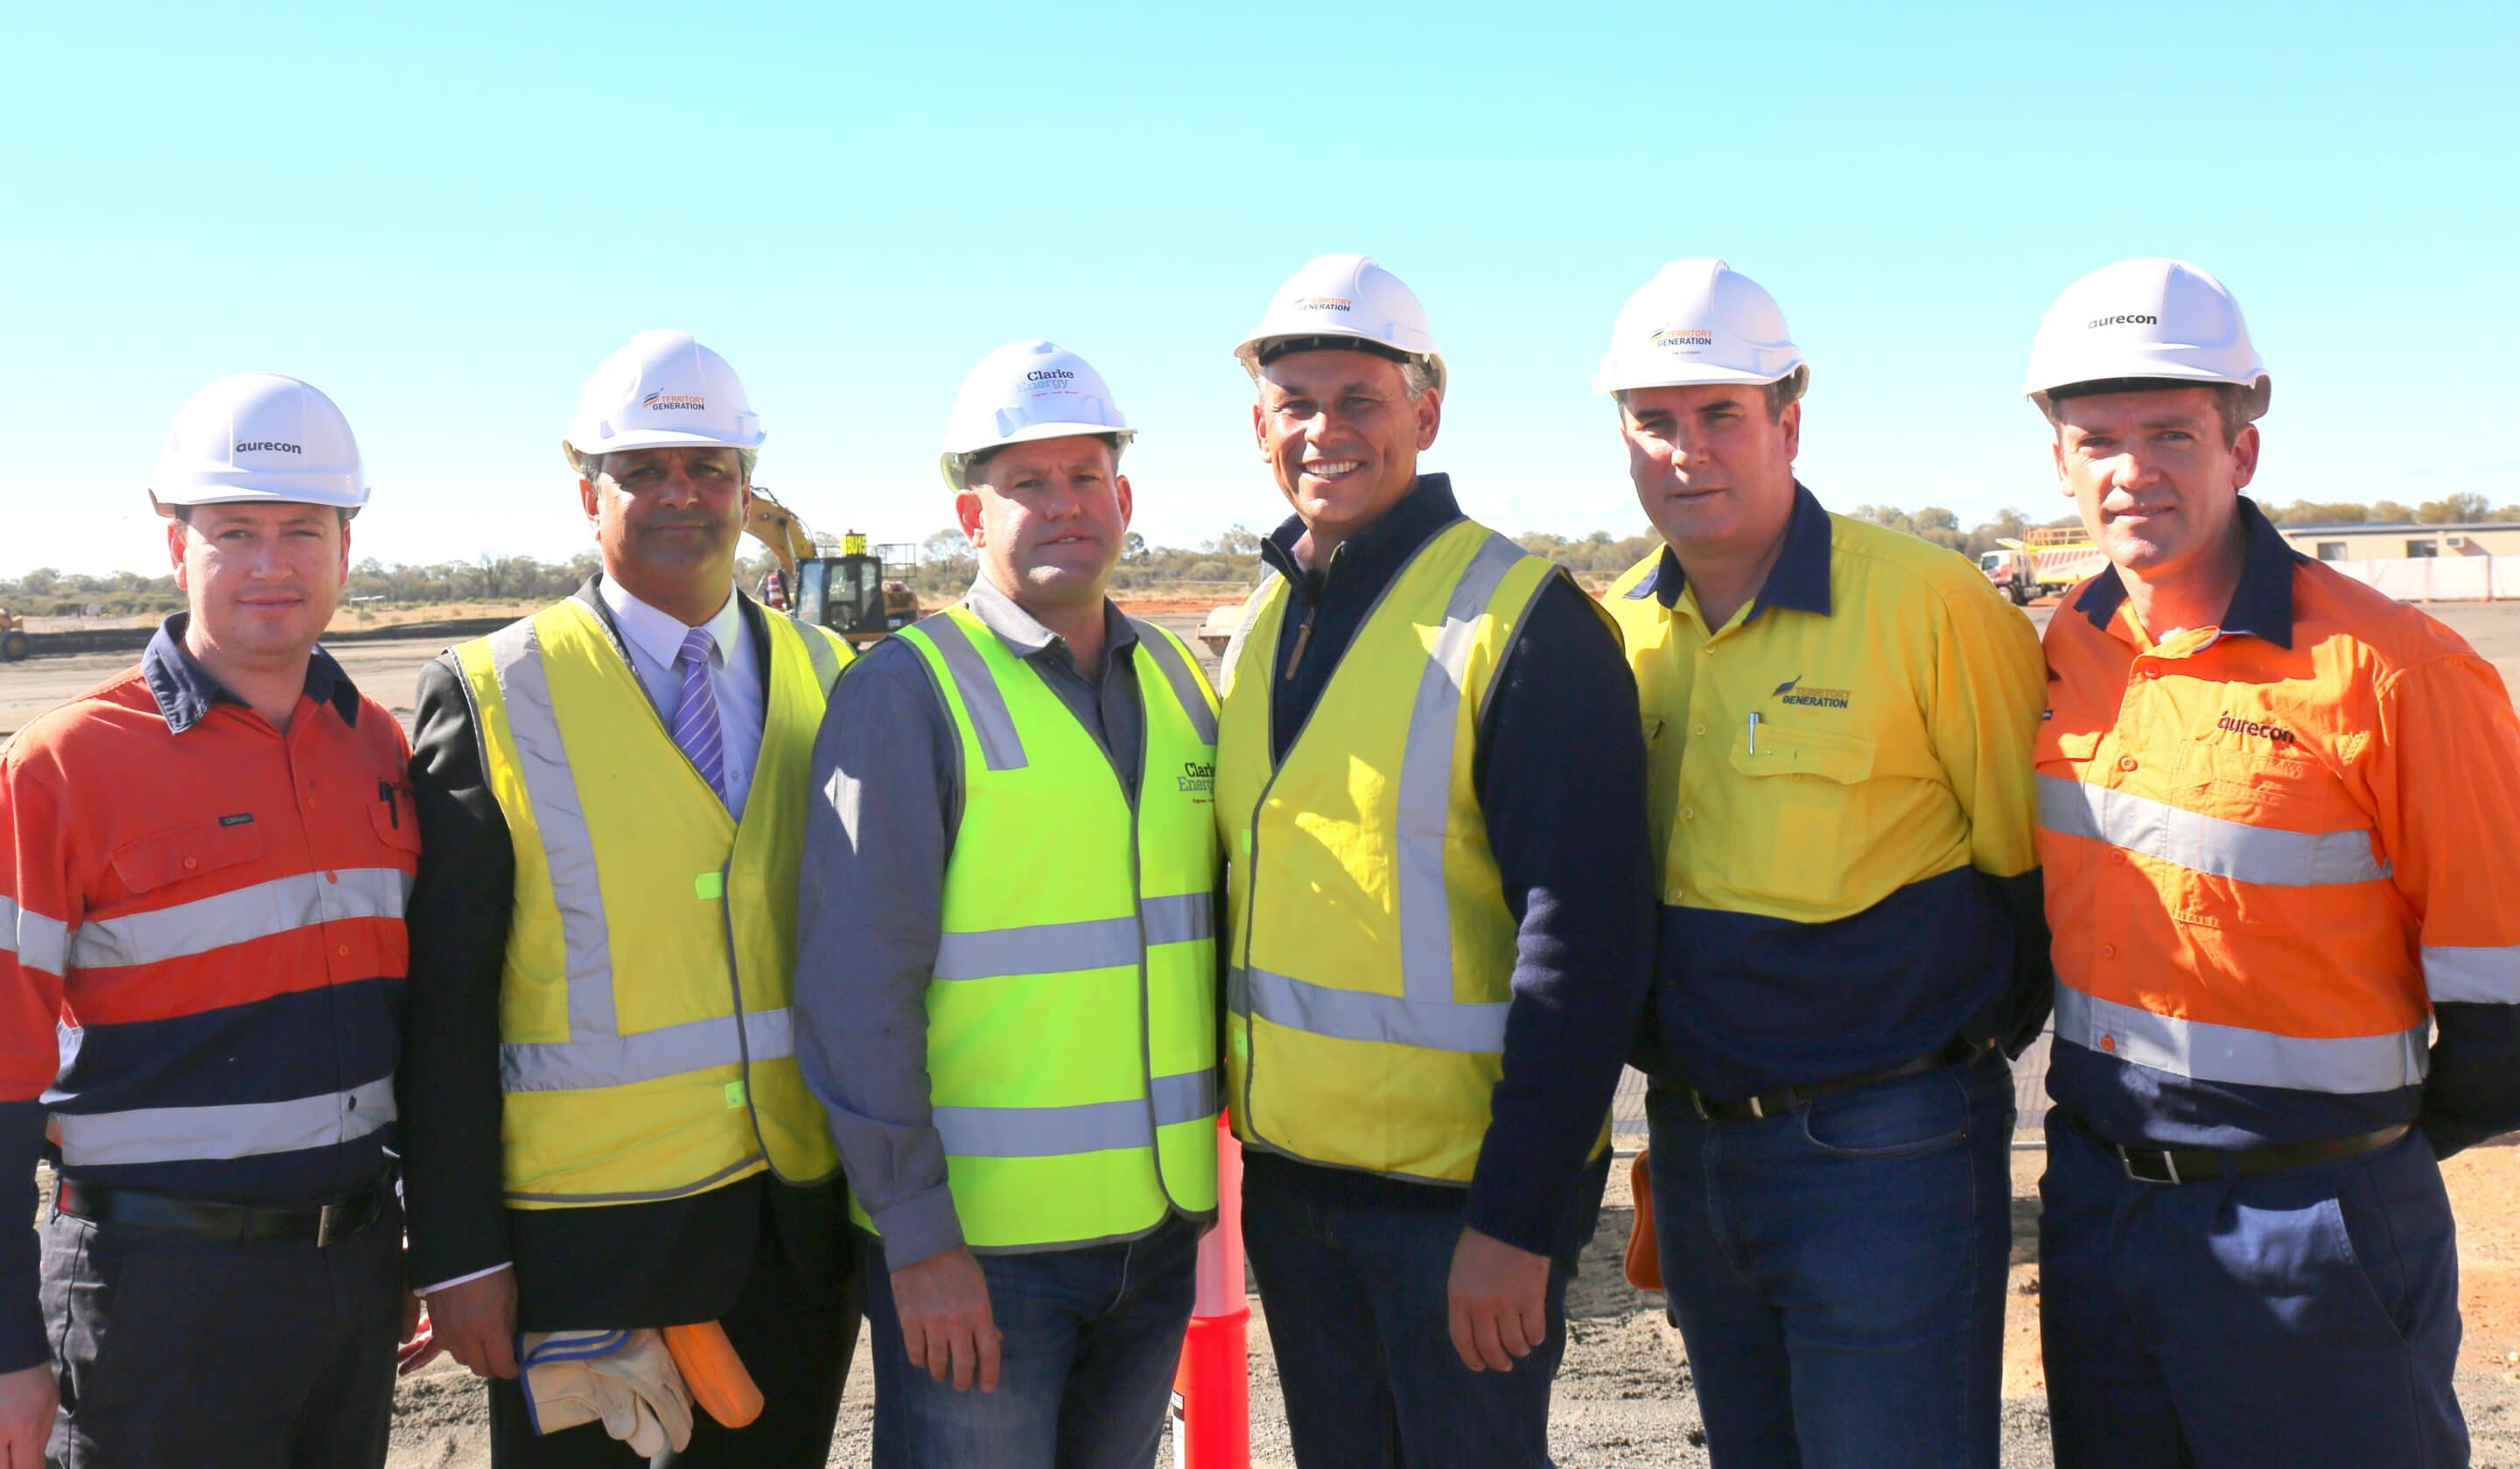 Photograph taken at the commencement of construction [l-r] Aurecon Regional Director – Paul Gleeson, Territory Generation Chairperson - David De Silva, Clarke Energy Main Board Director - Greg Columbus, Northern Territory Chief Minister - Adam Giles, Territory Generation Chief Executive Officer - Tim Duignan, Aurecon  Associate, Energy Services – Paul Godden